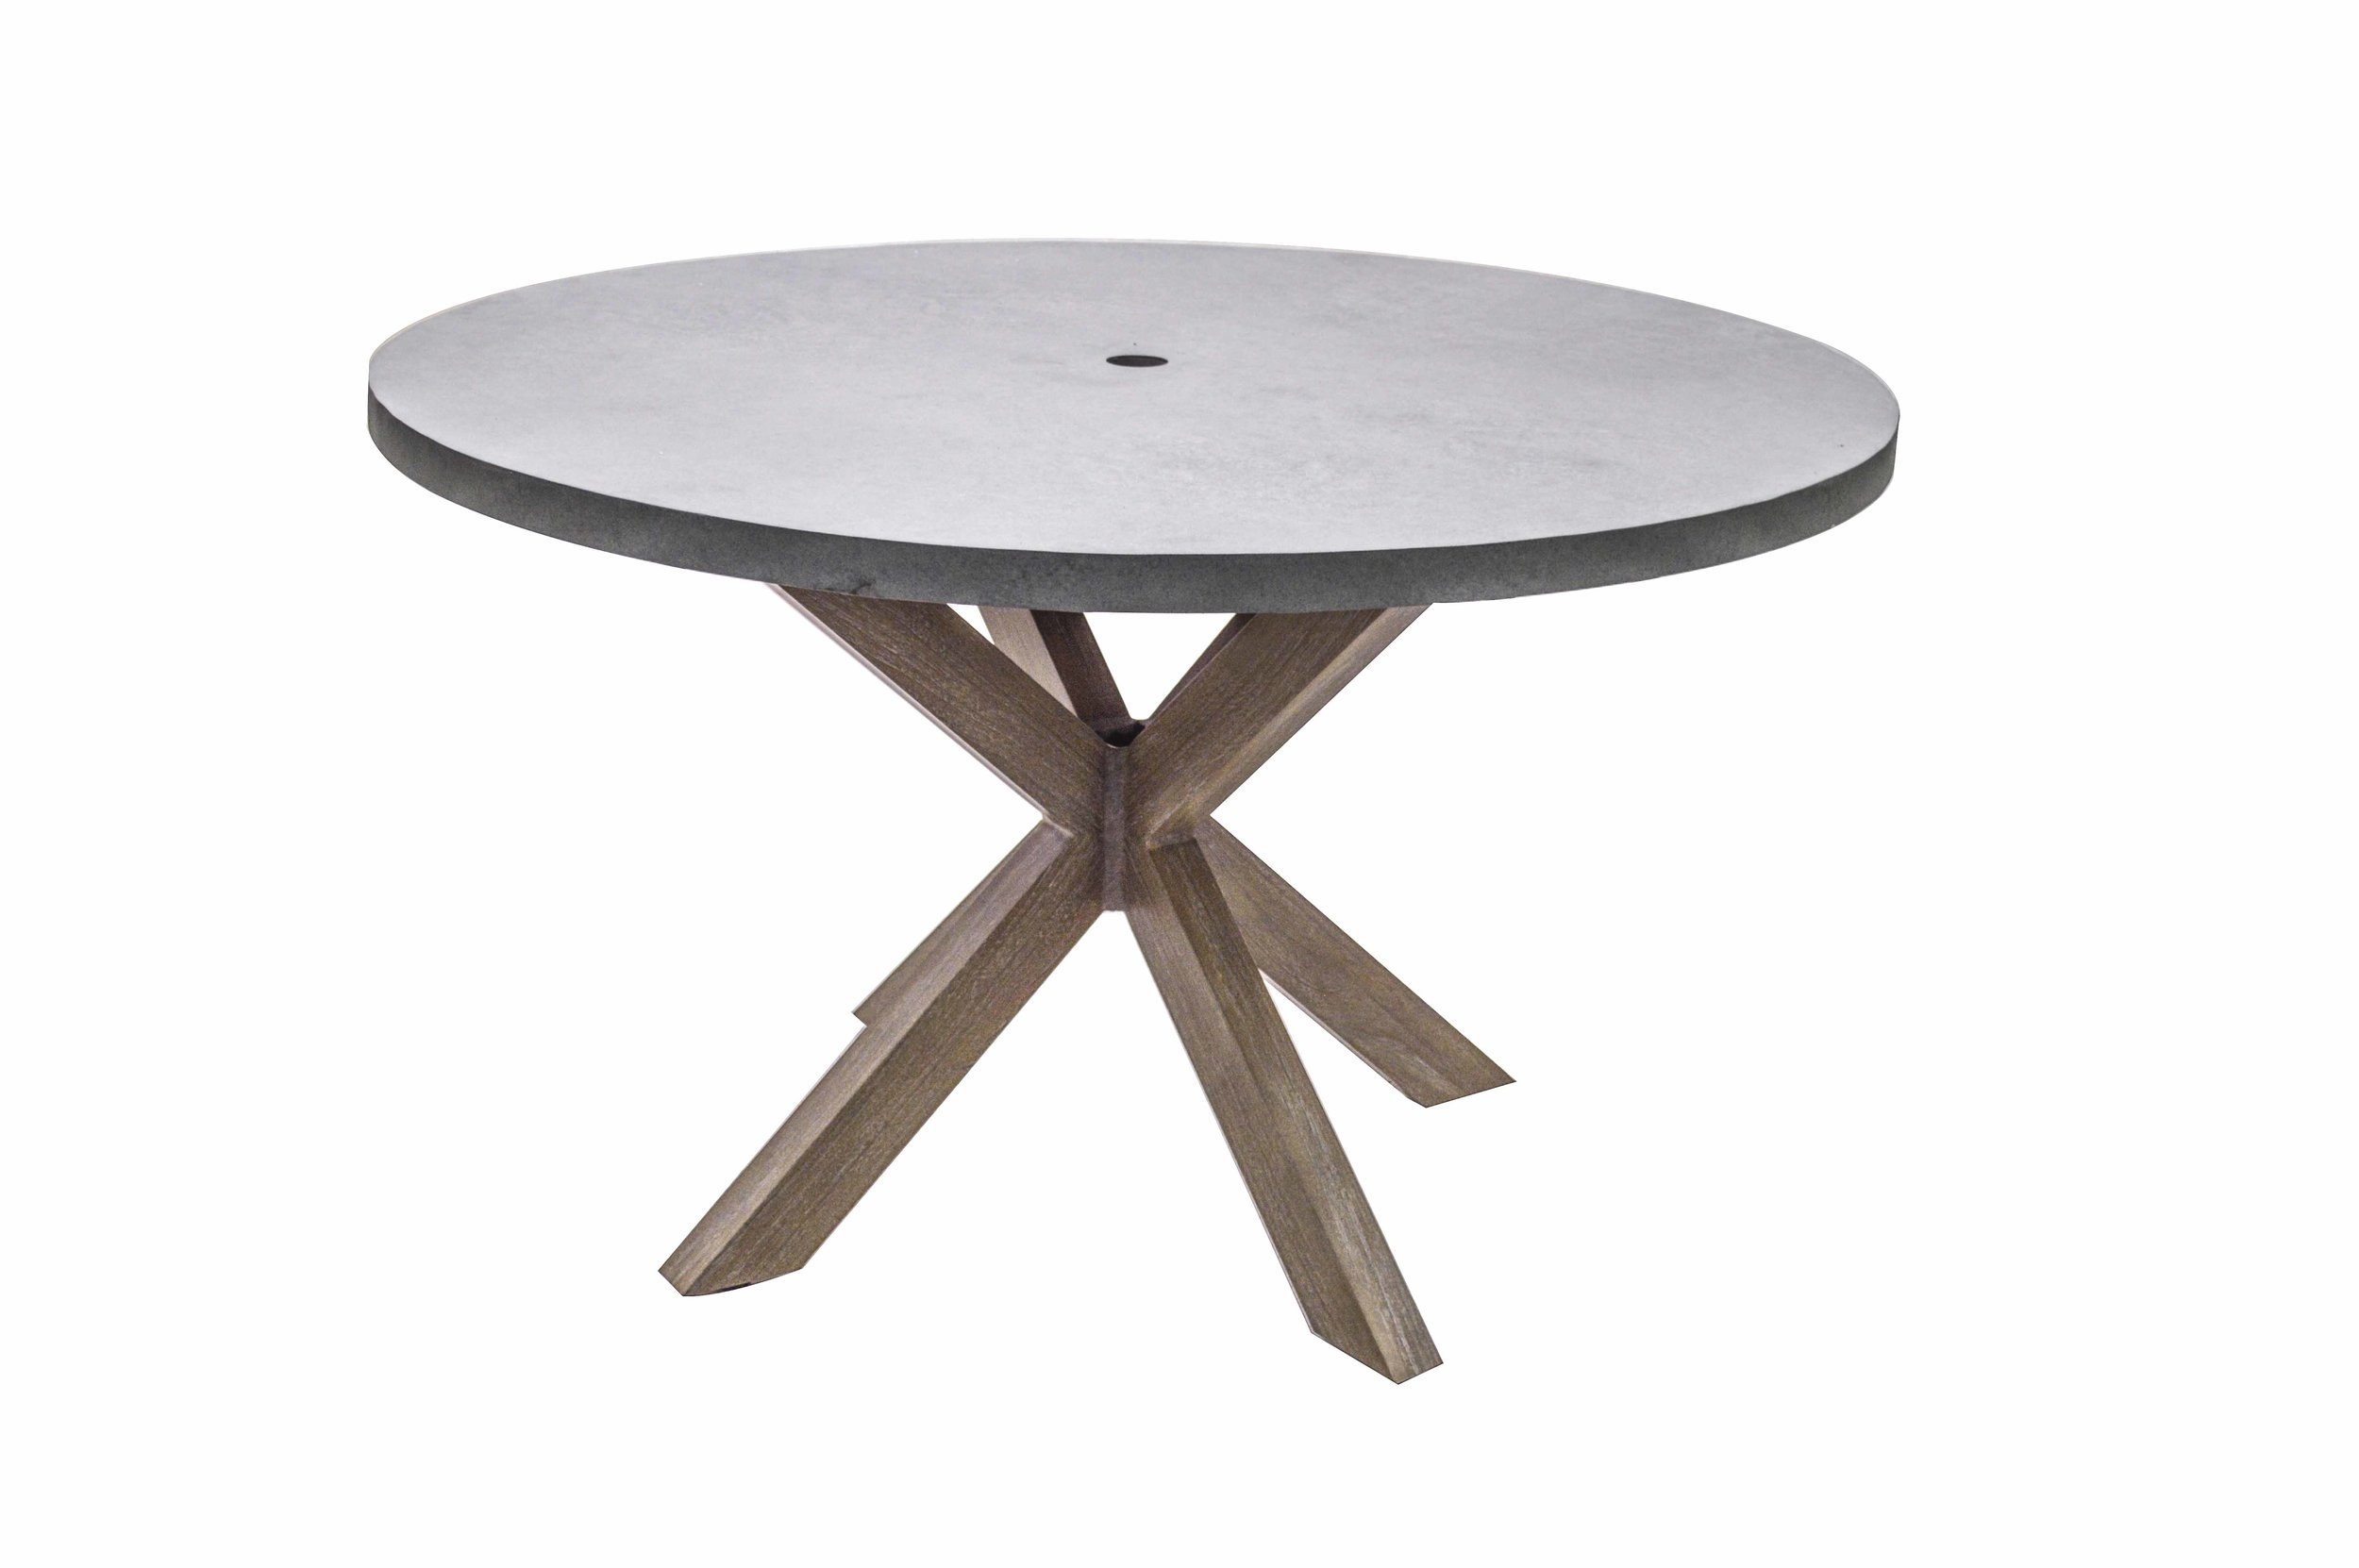 "CLR-48R 48"" Round Dining Table   48"" dia x 29"""